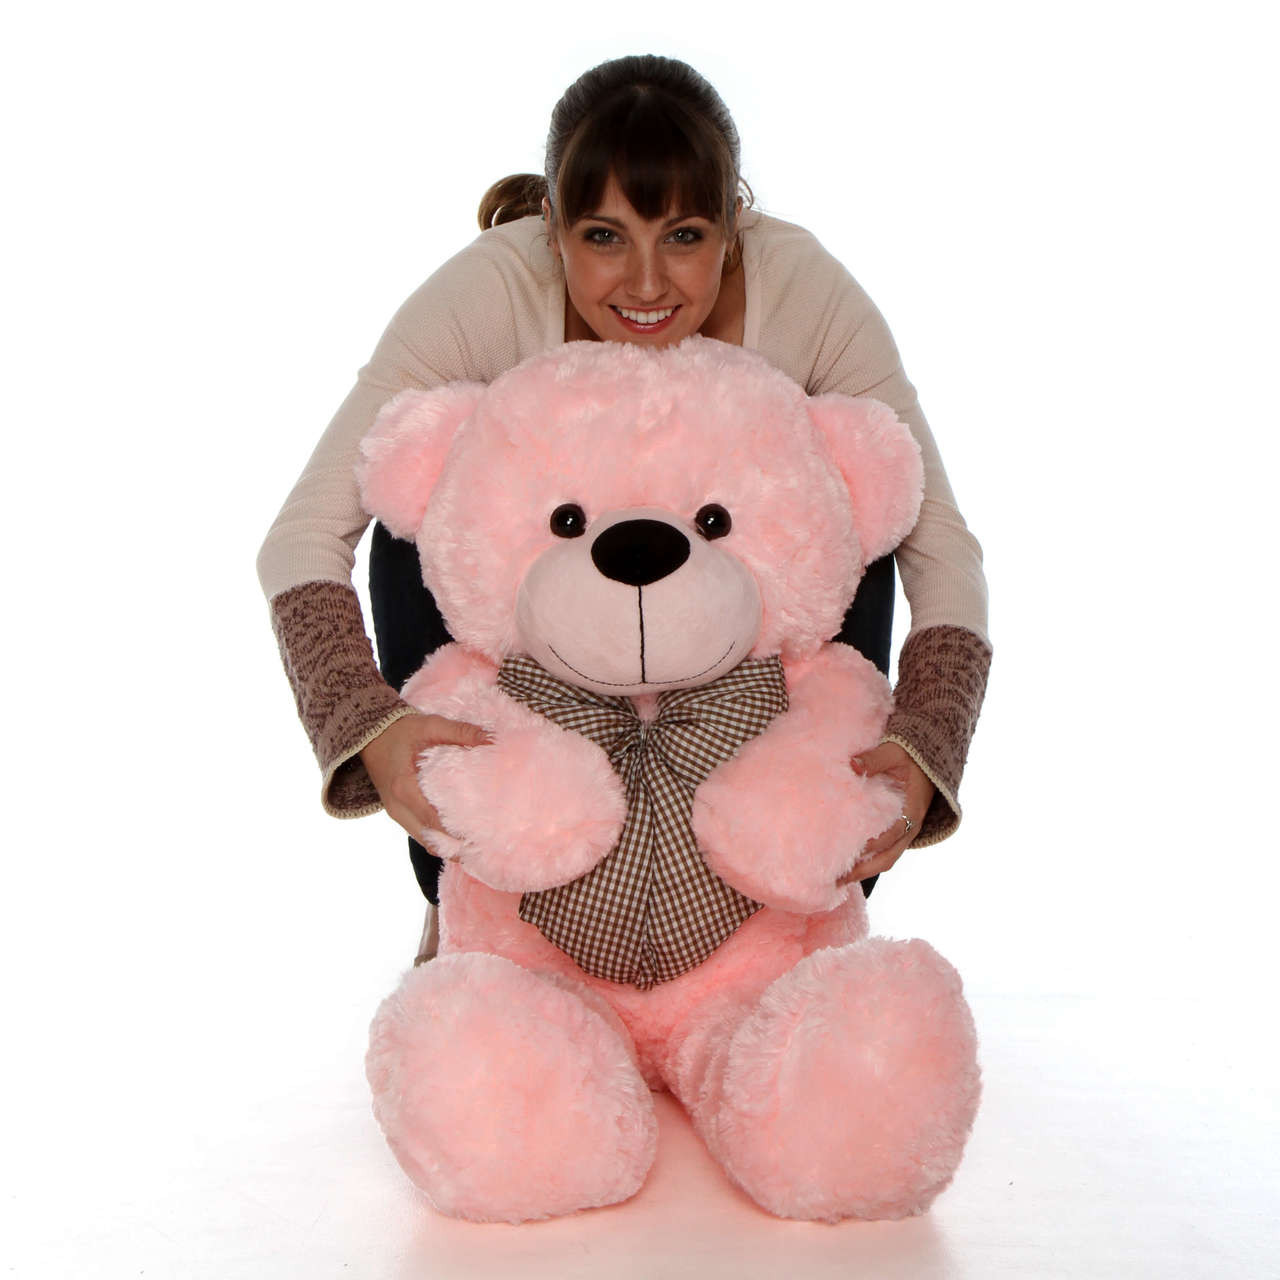 Lady Cuddles - 38 - Super Soft & Huggable, Pink Plush Bear